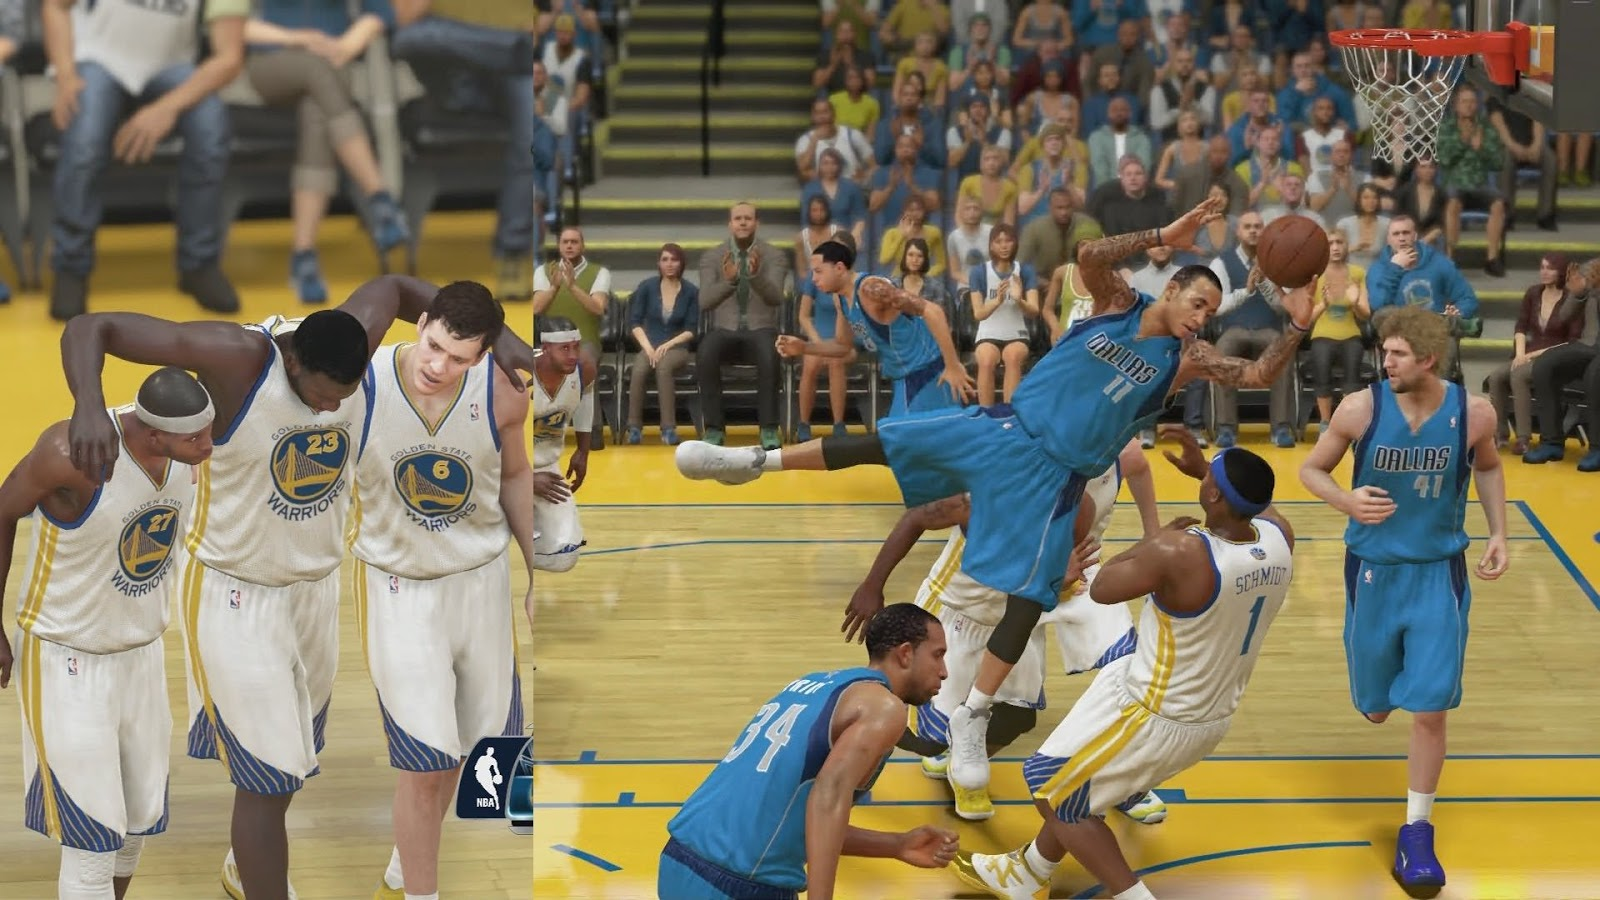 NBA 2k15 'Injuries 2.0' System Details : Realistic Injuries